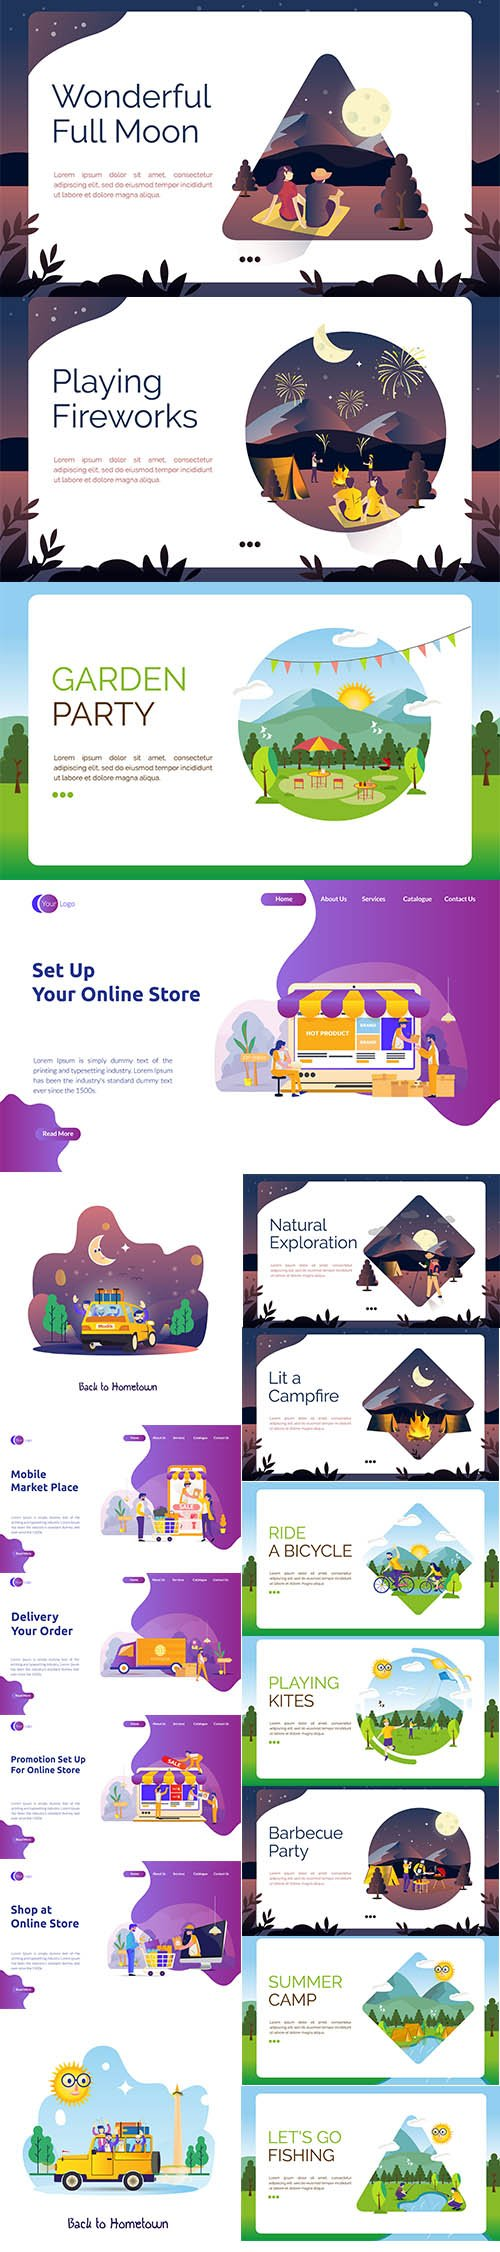 Landing Page Shop Online Store, Full Mood View and Beautiful Nature Flat Illustration